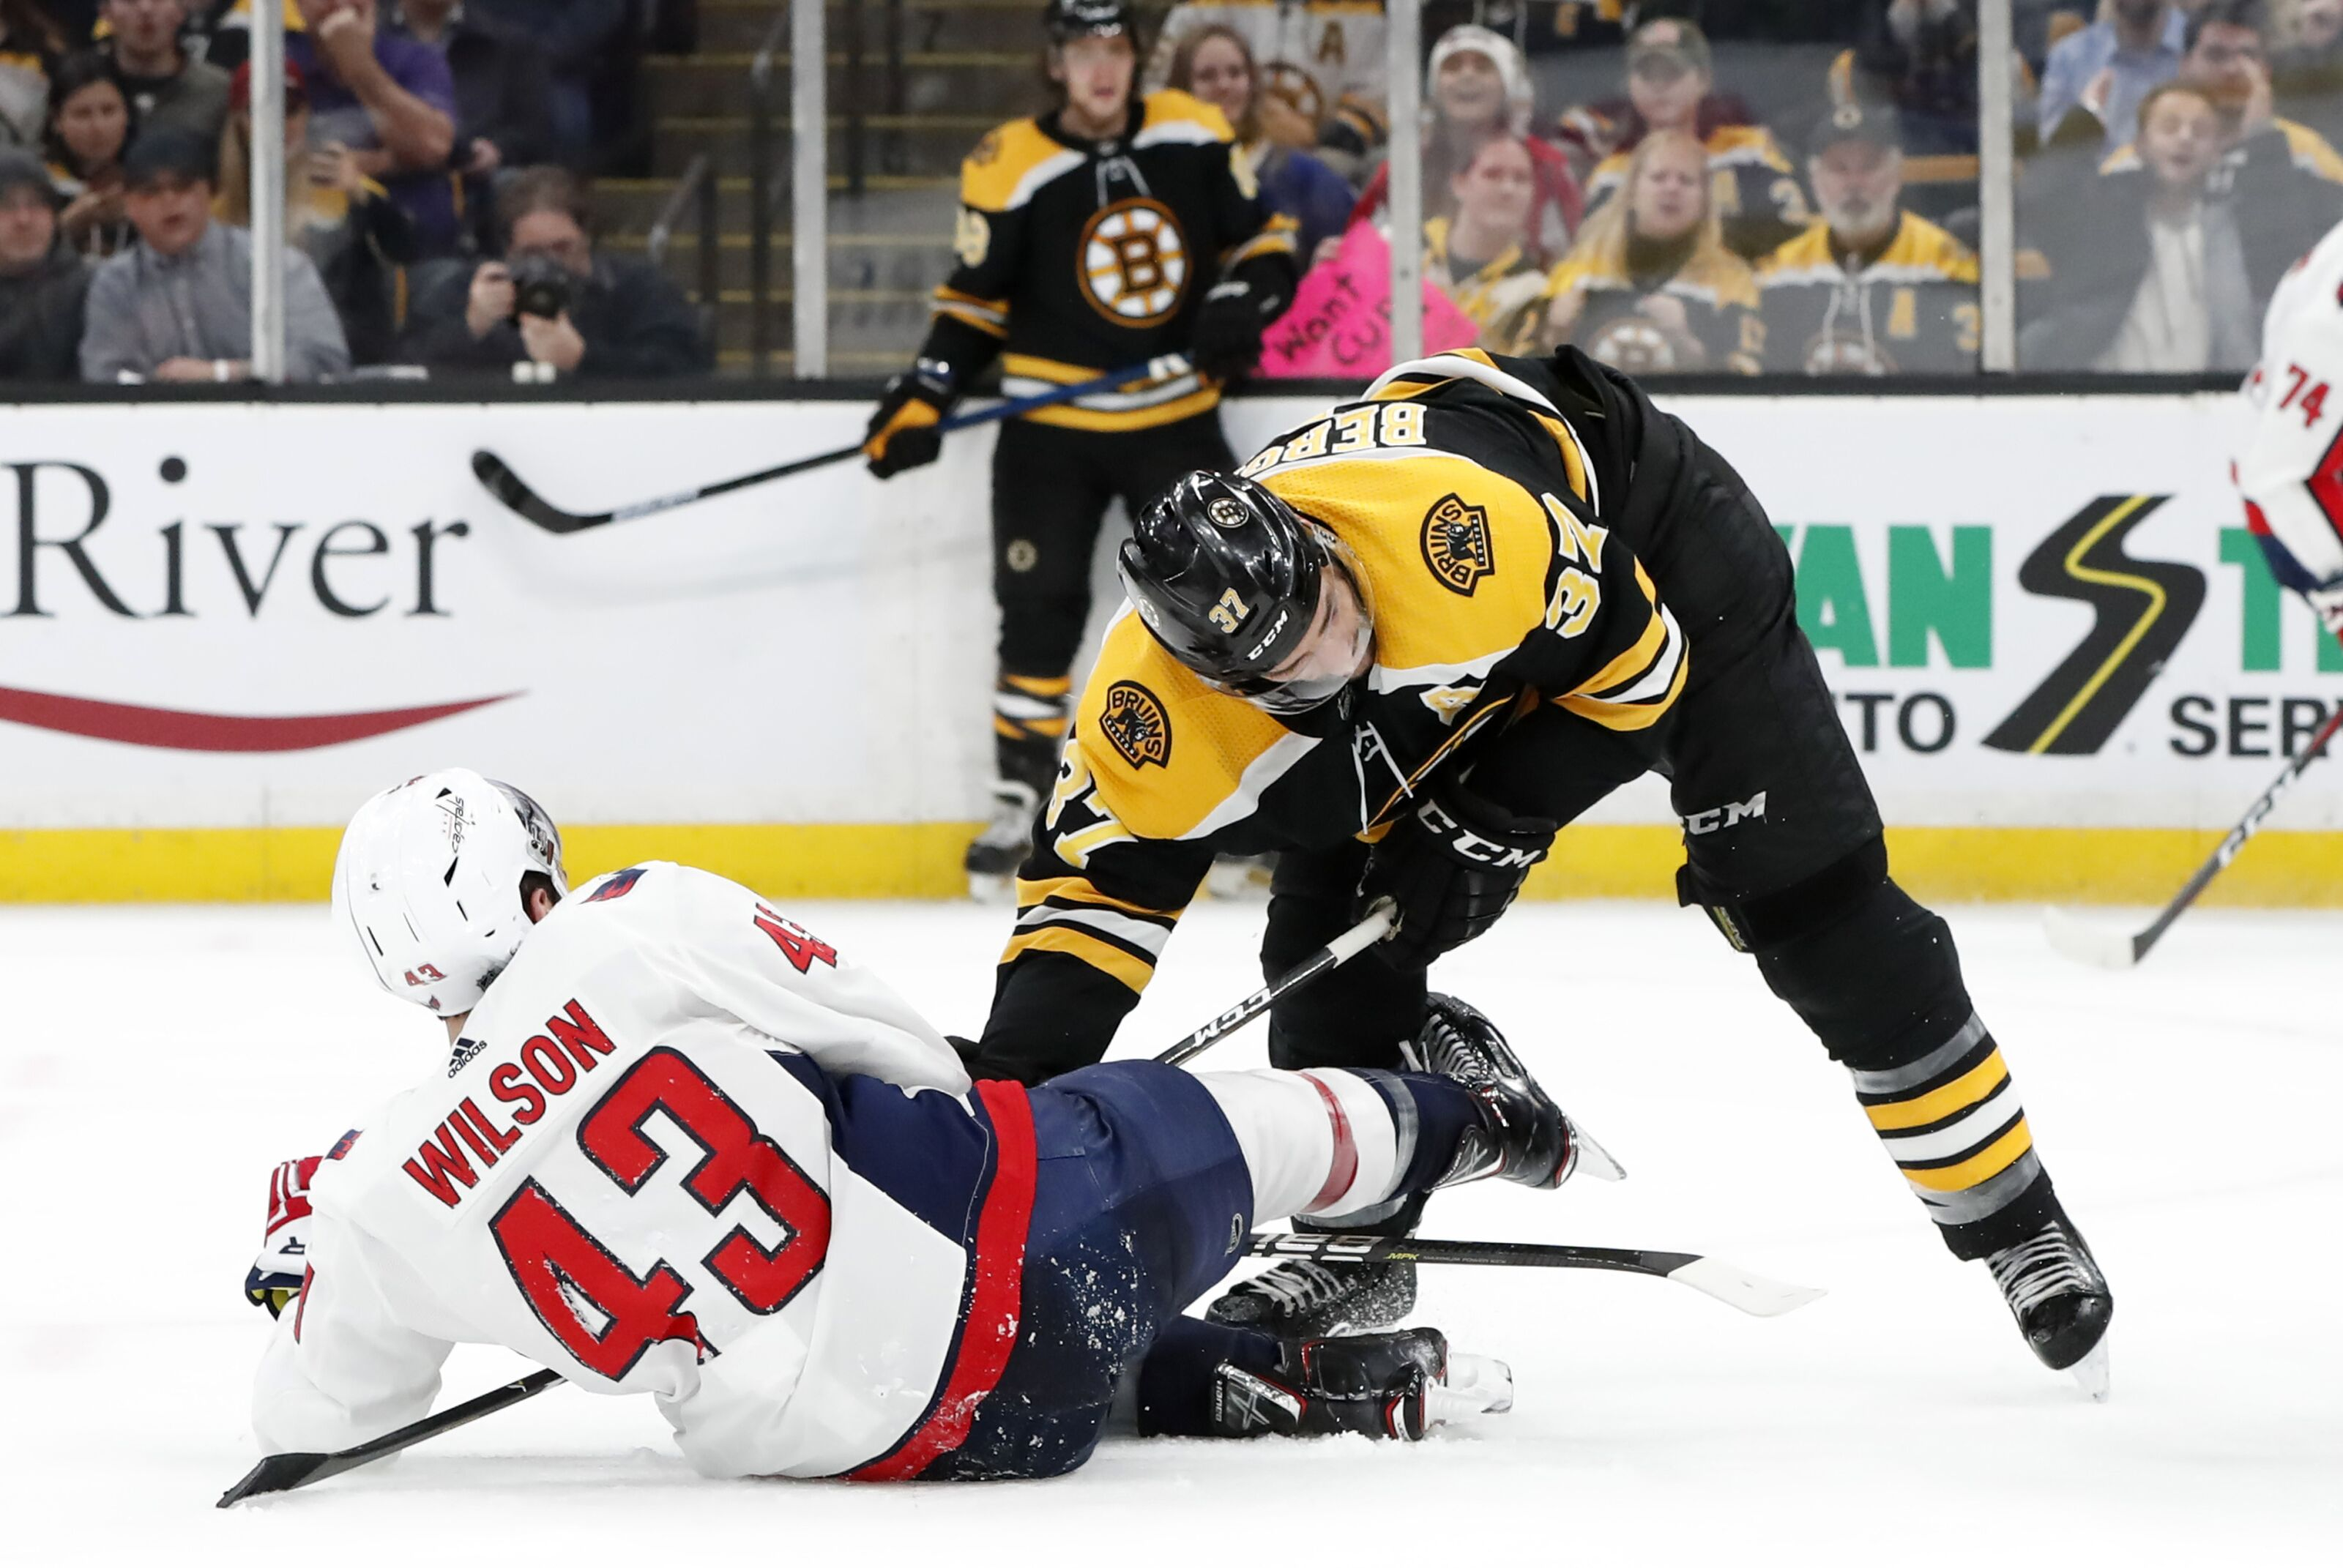 Boston Bruins: Will history repeat itself against the Washington Capitals?